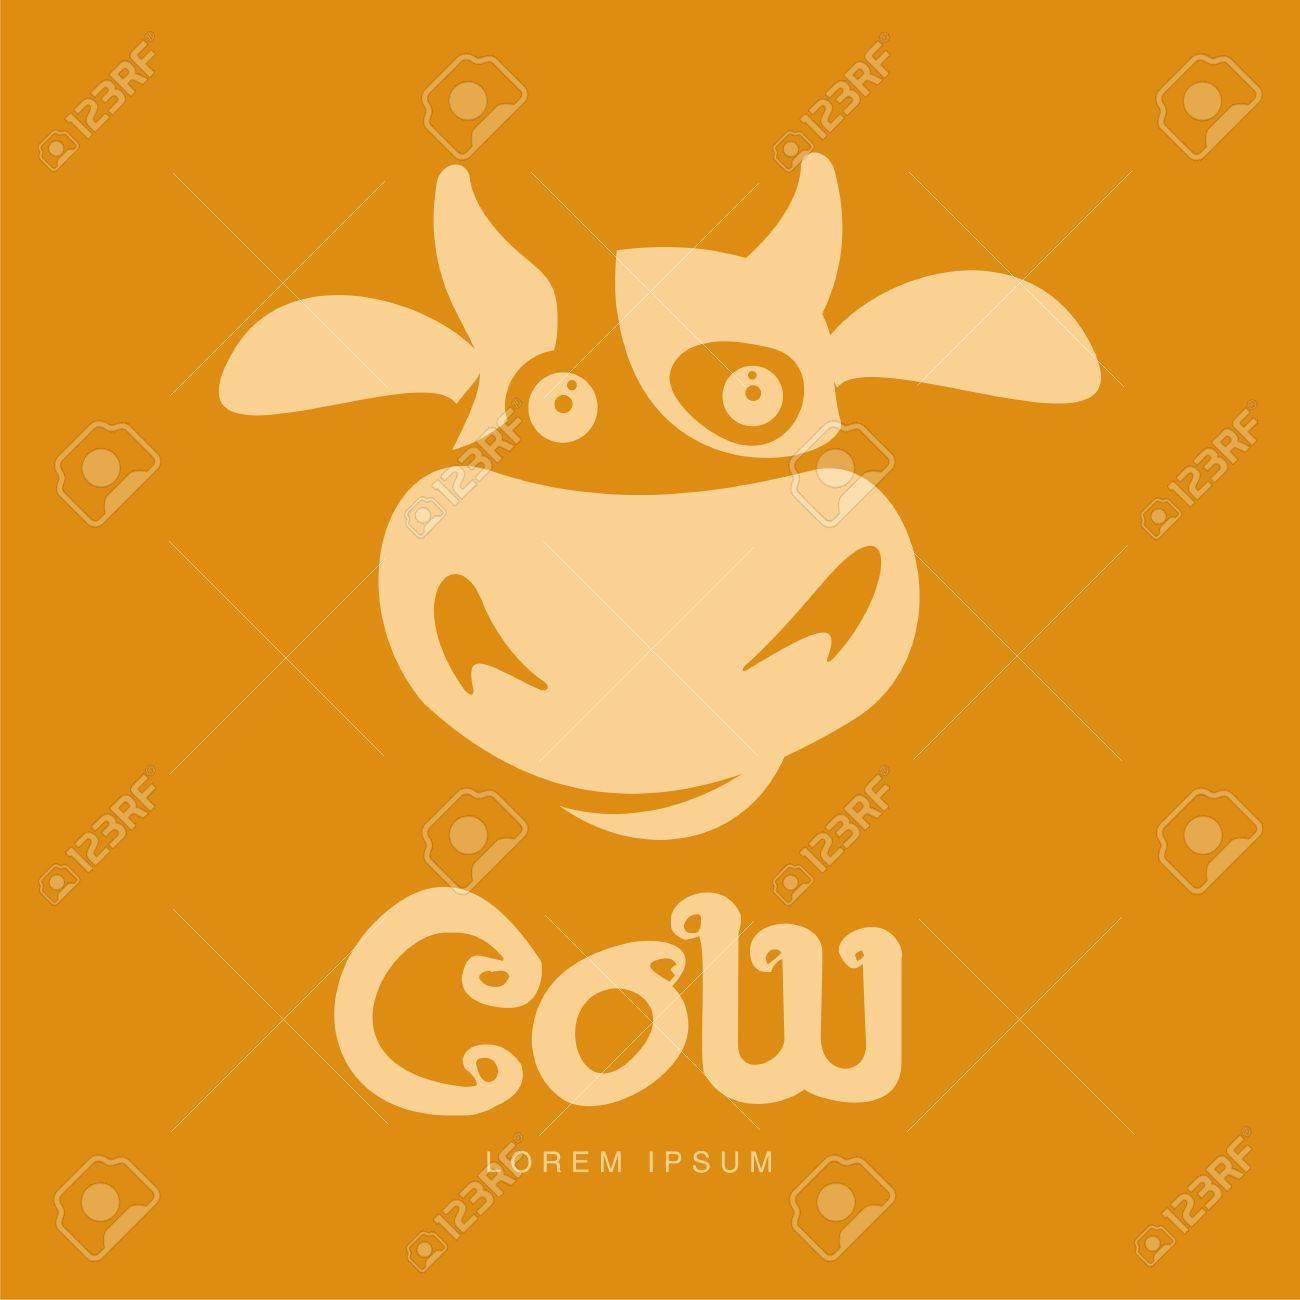 funny cow head logo template funny smiling sad cow face for royalty free cliparts vectors and stock illustration image 74729411 123rf com